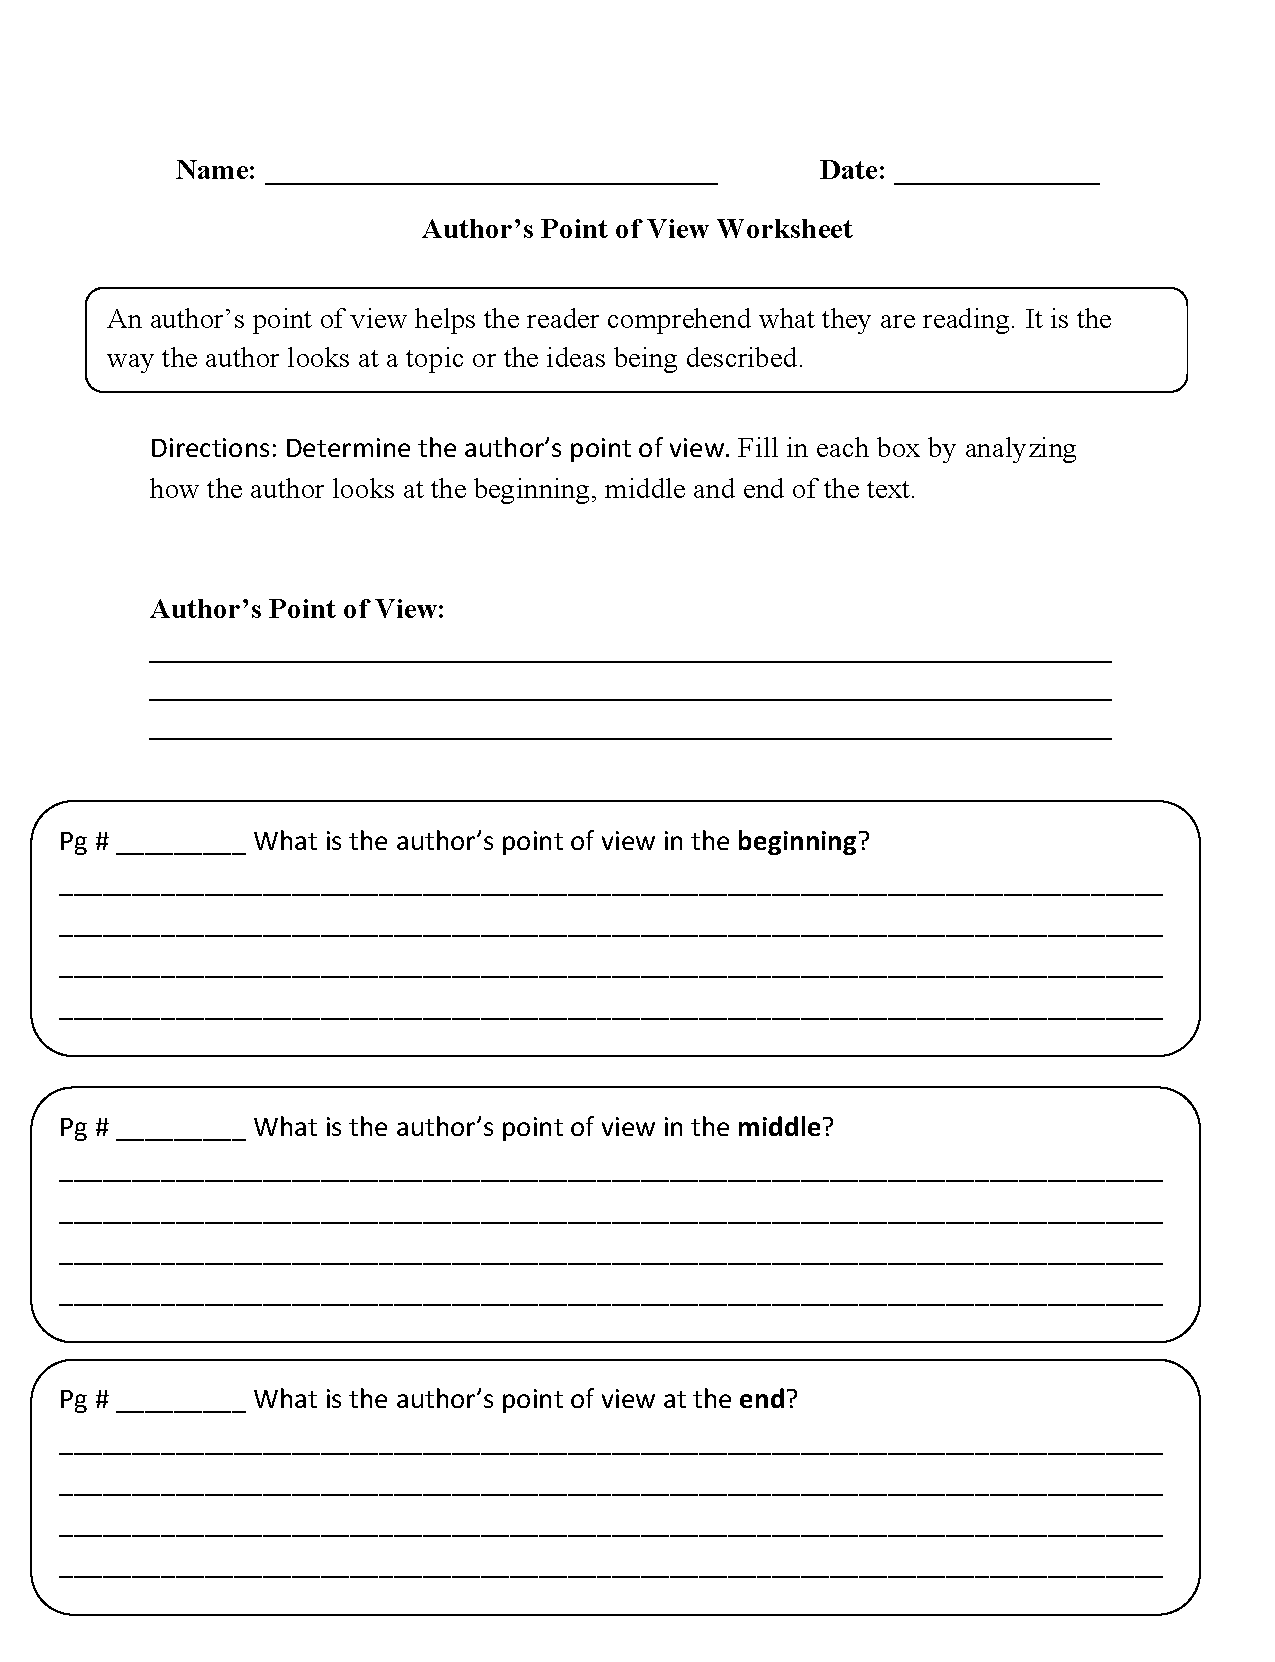 Englishlinx.com | Point of View Worksheets